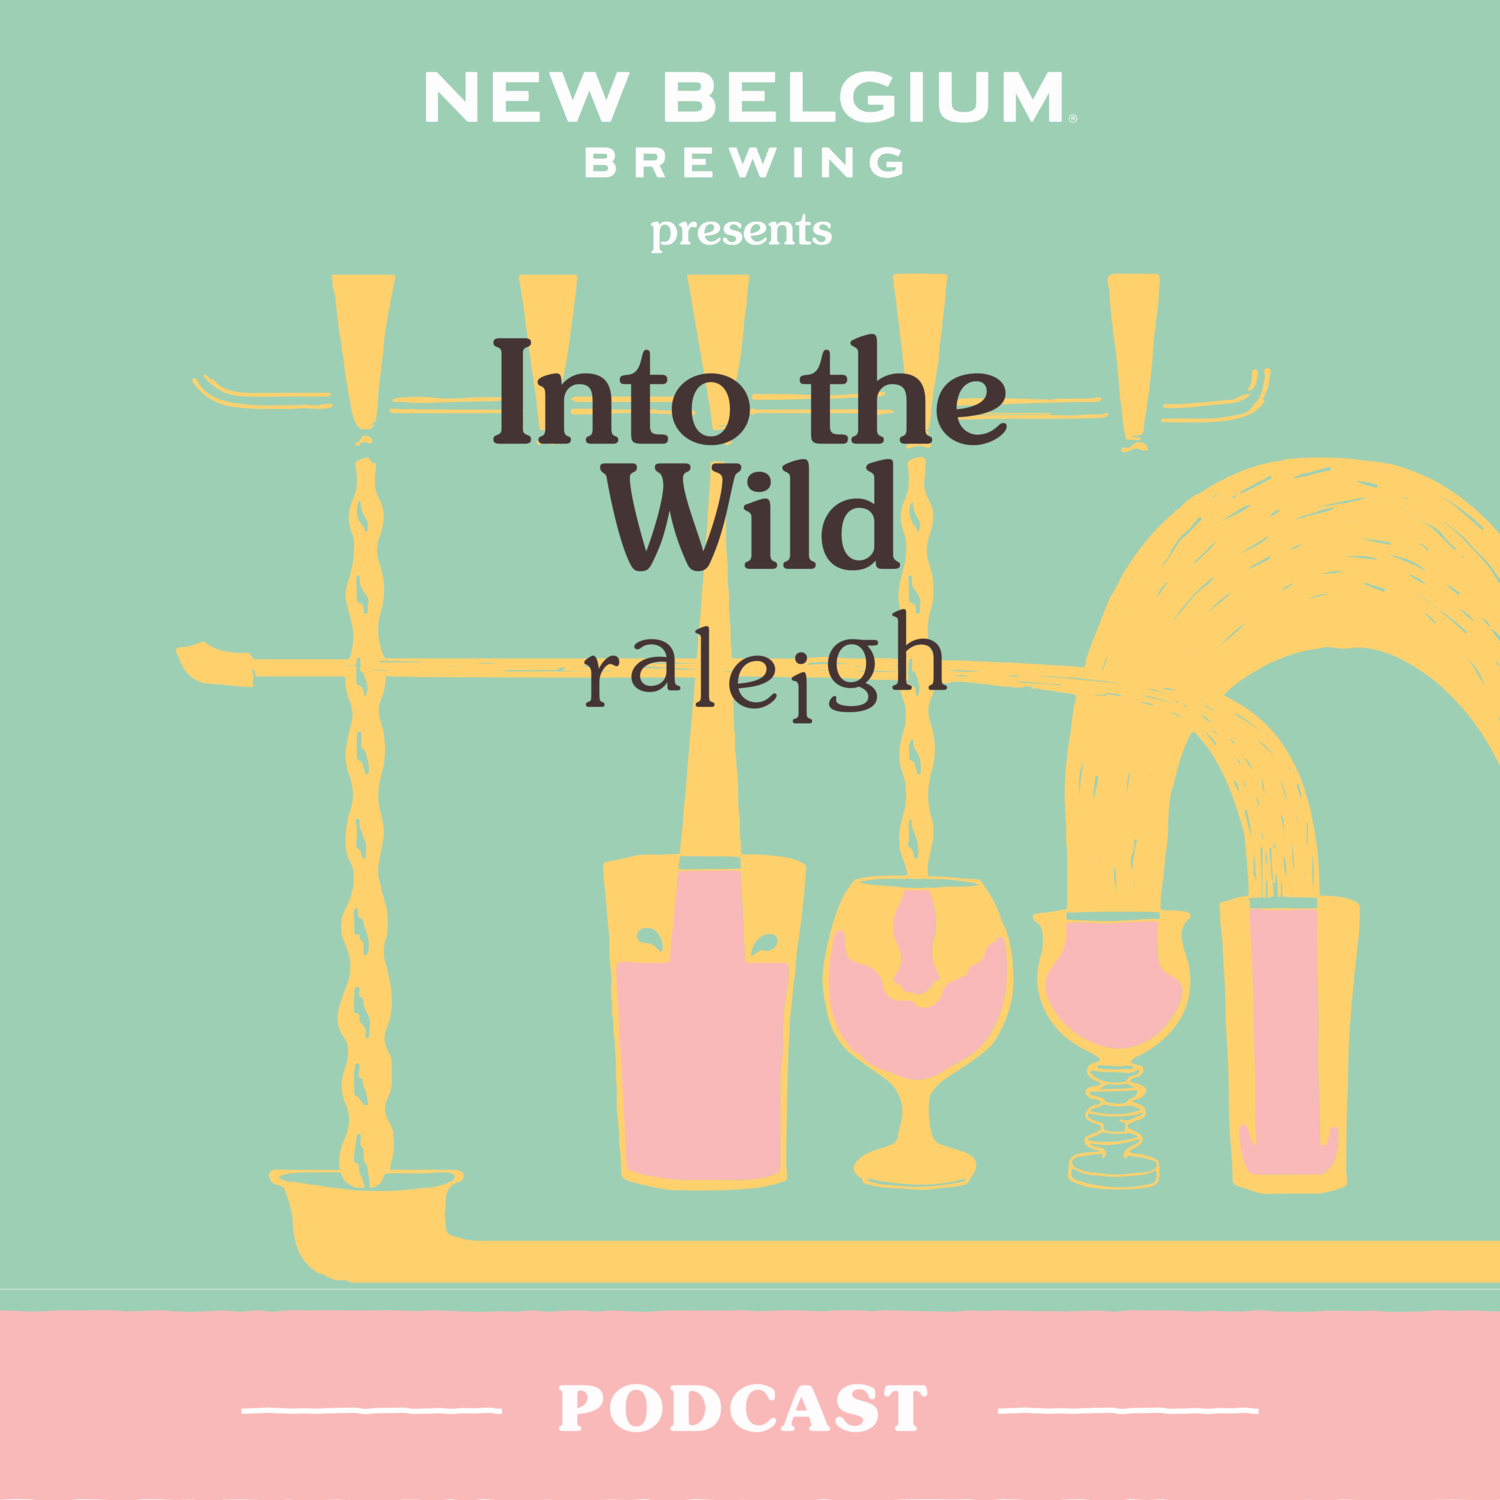 Into the Wild: Raleigh